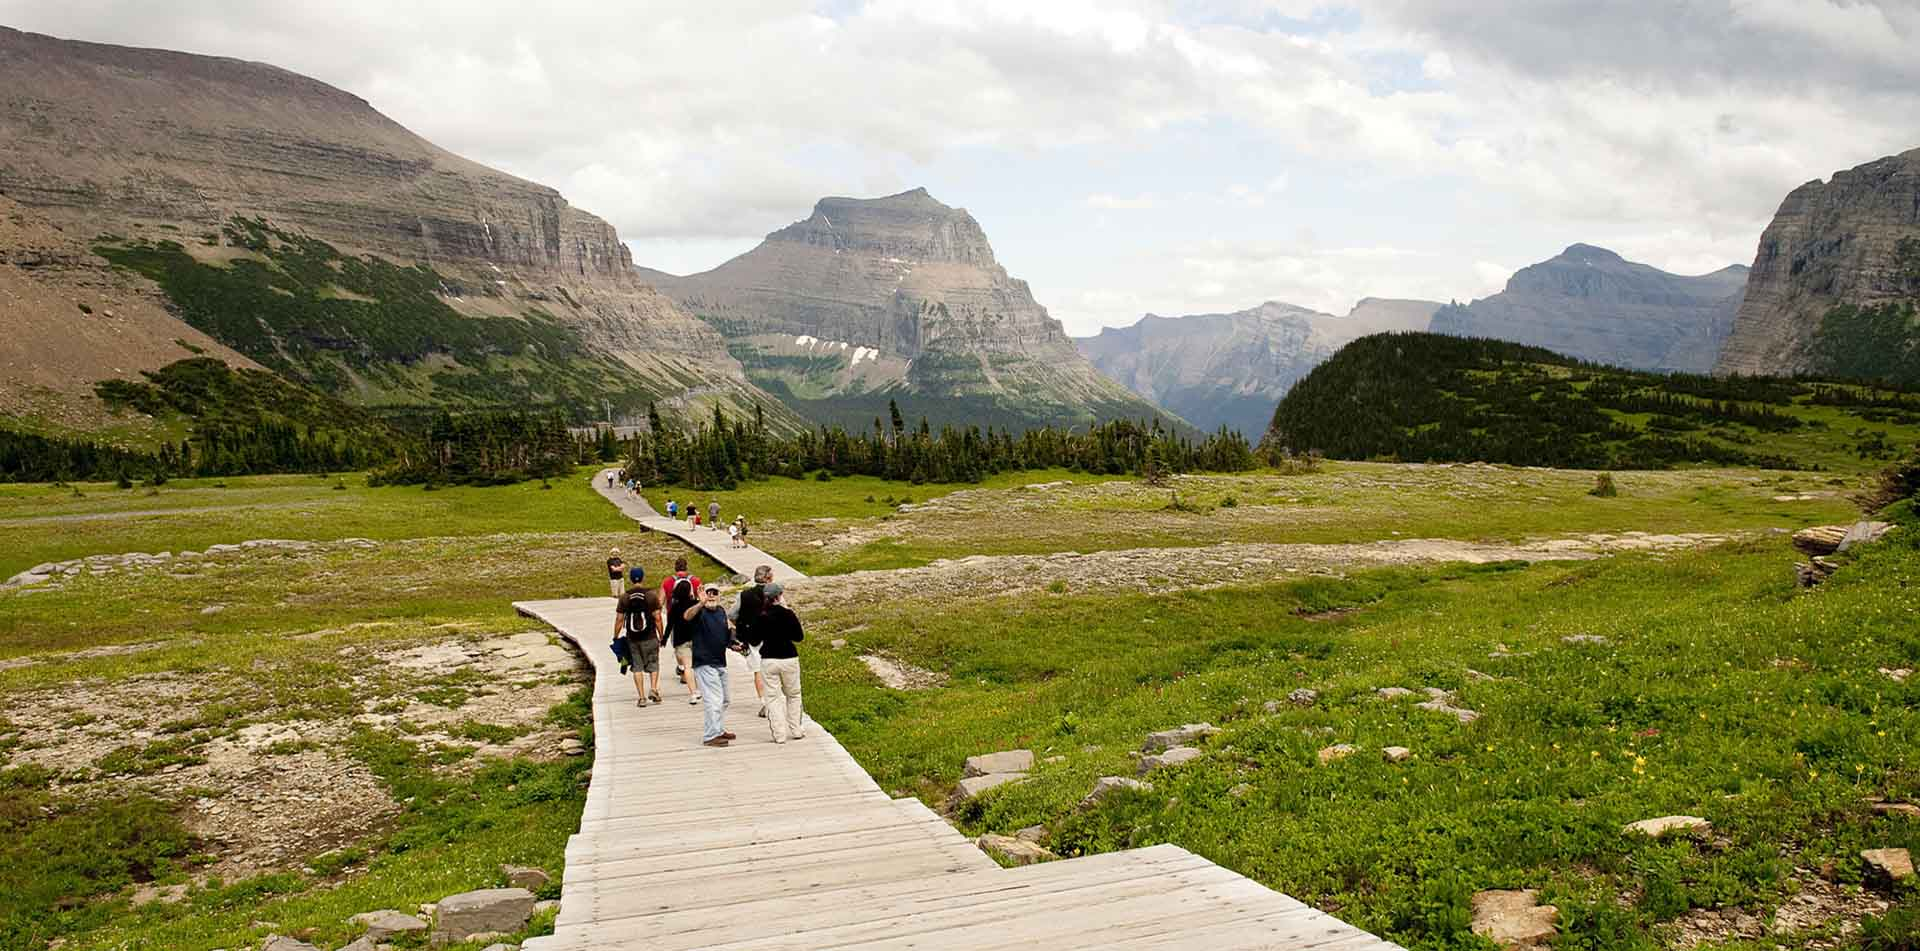 North America United States Montana group hike trail scenic mountains field outdoors nature - luxury vacation destinations